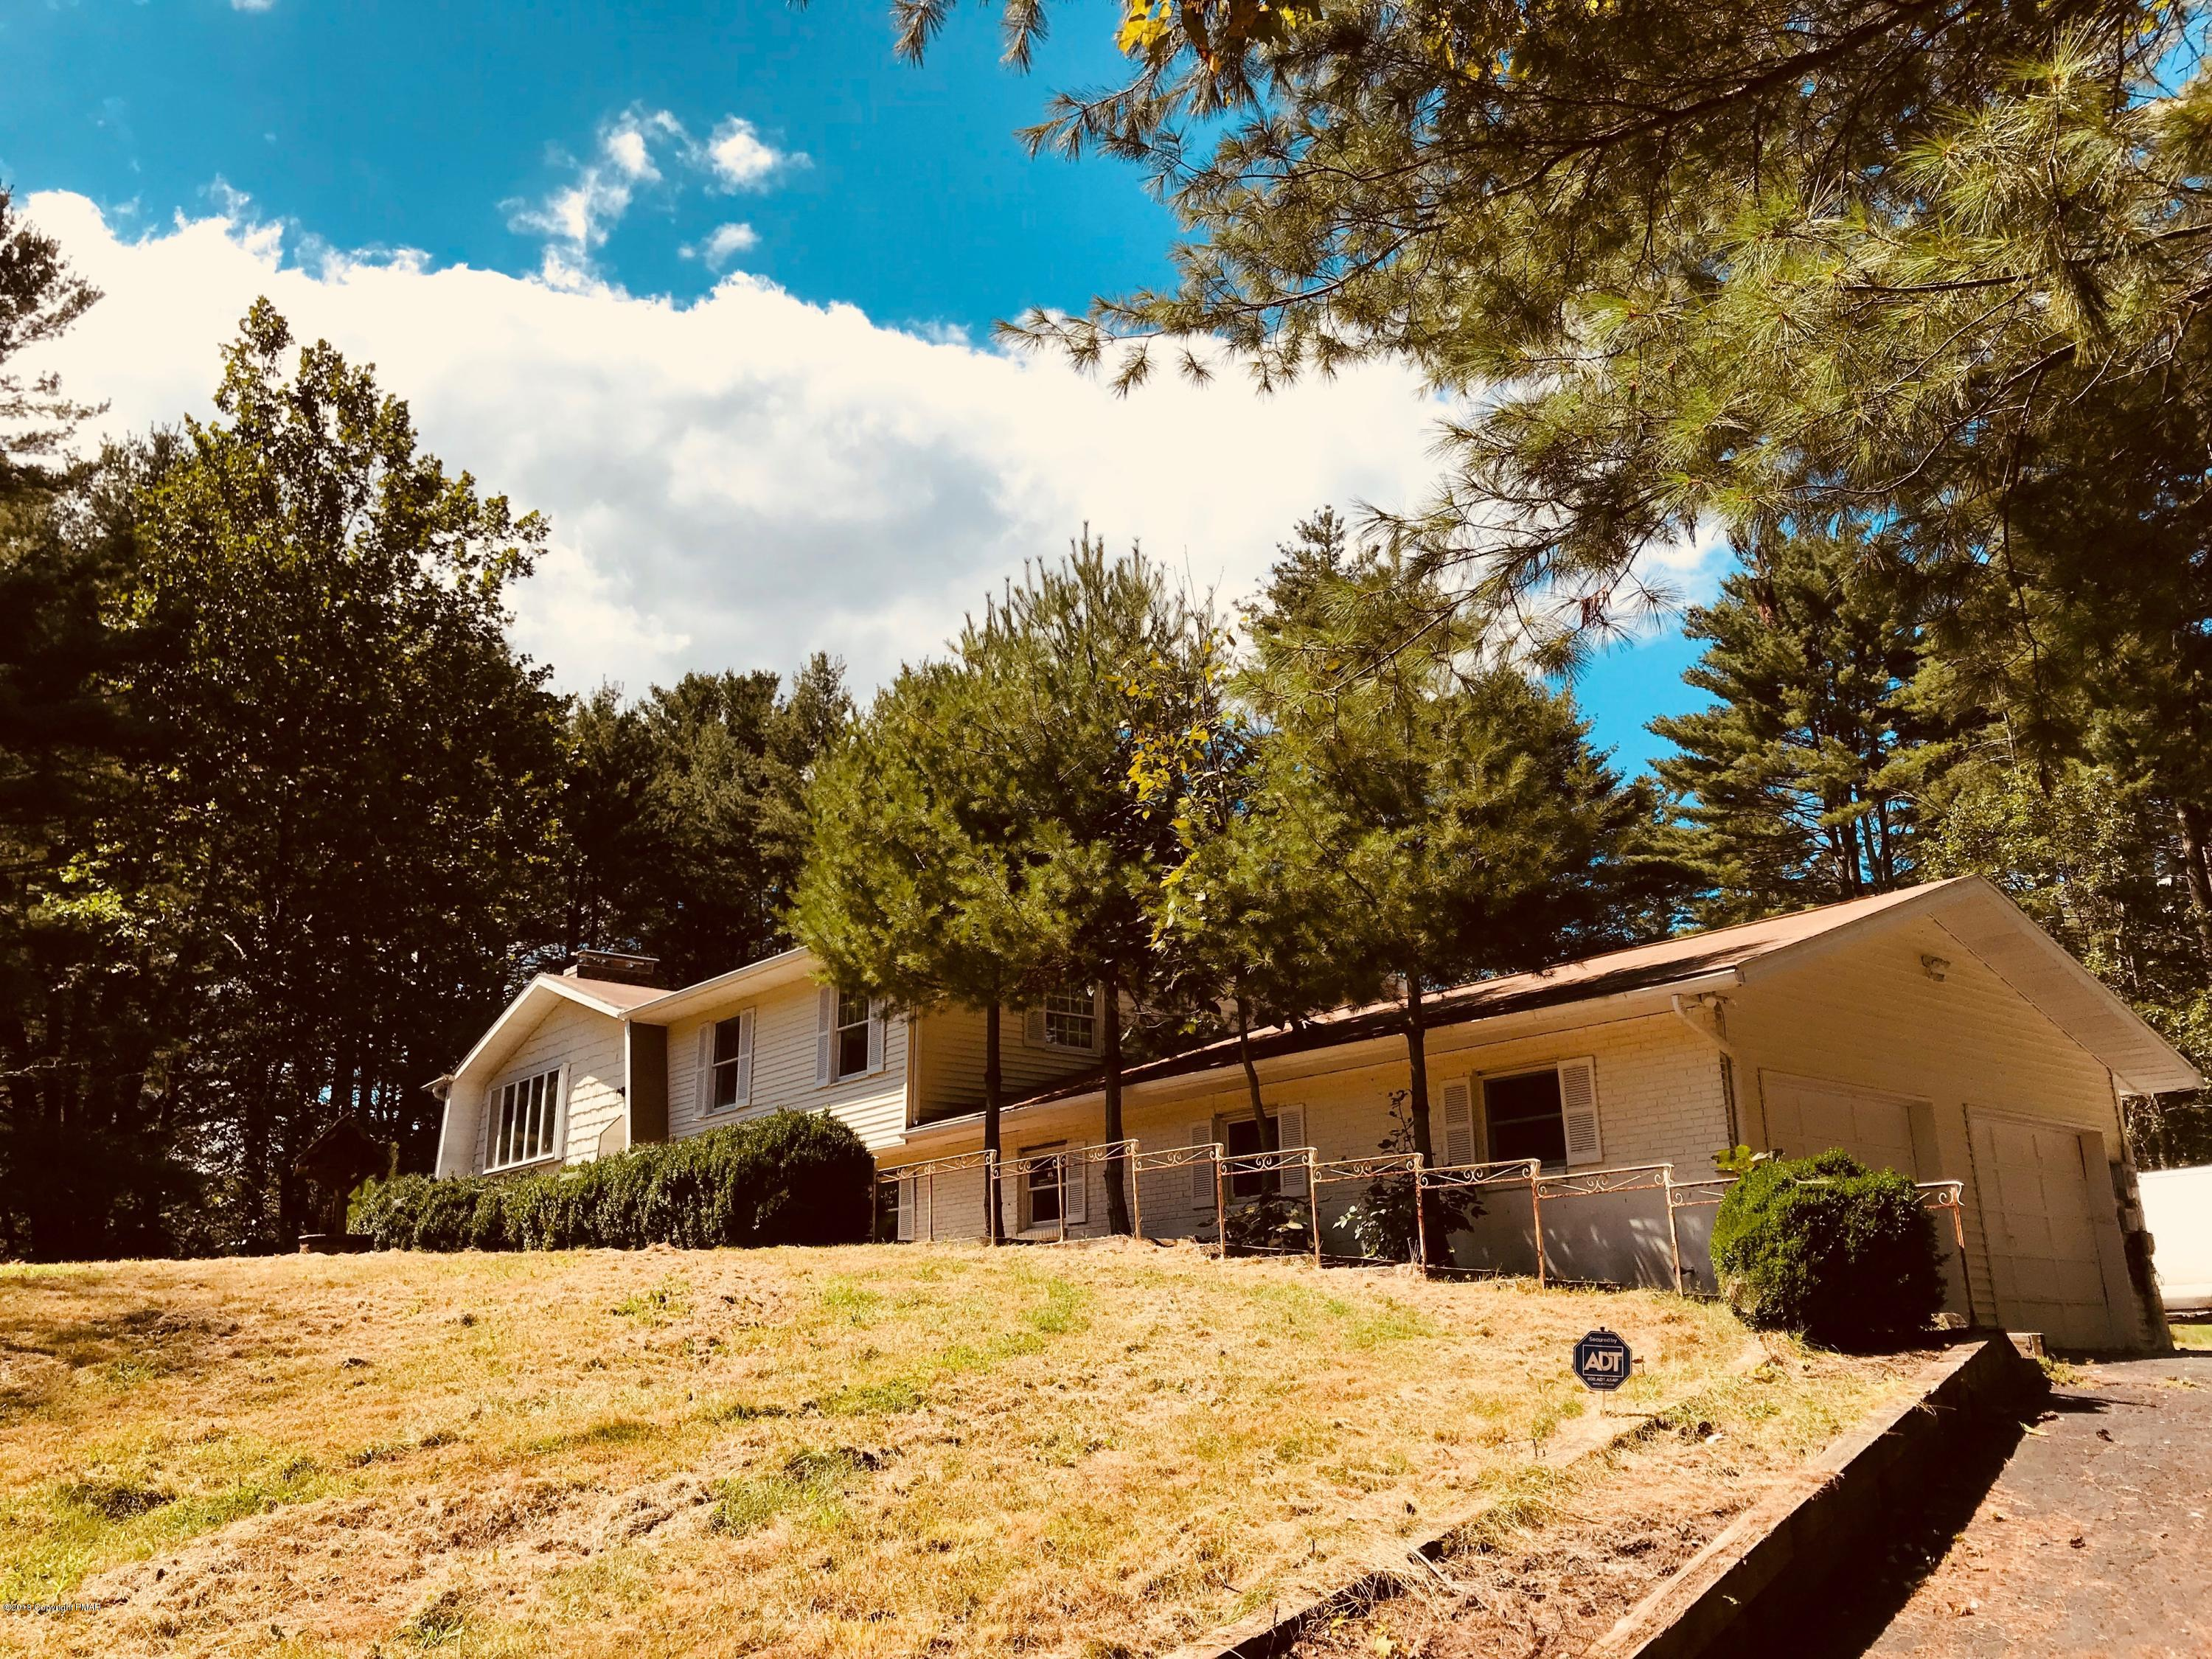 3751 Route 715, Henryville, PA 18332